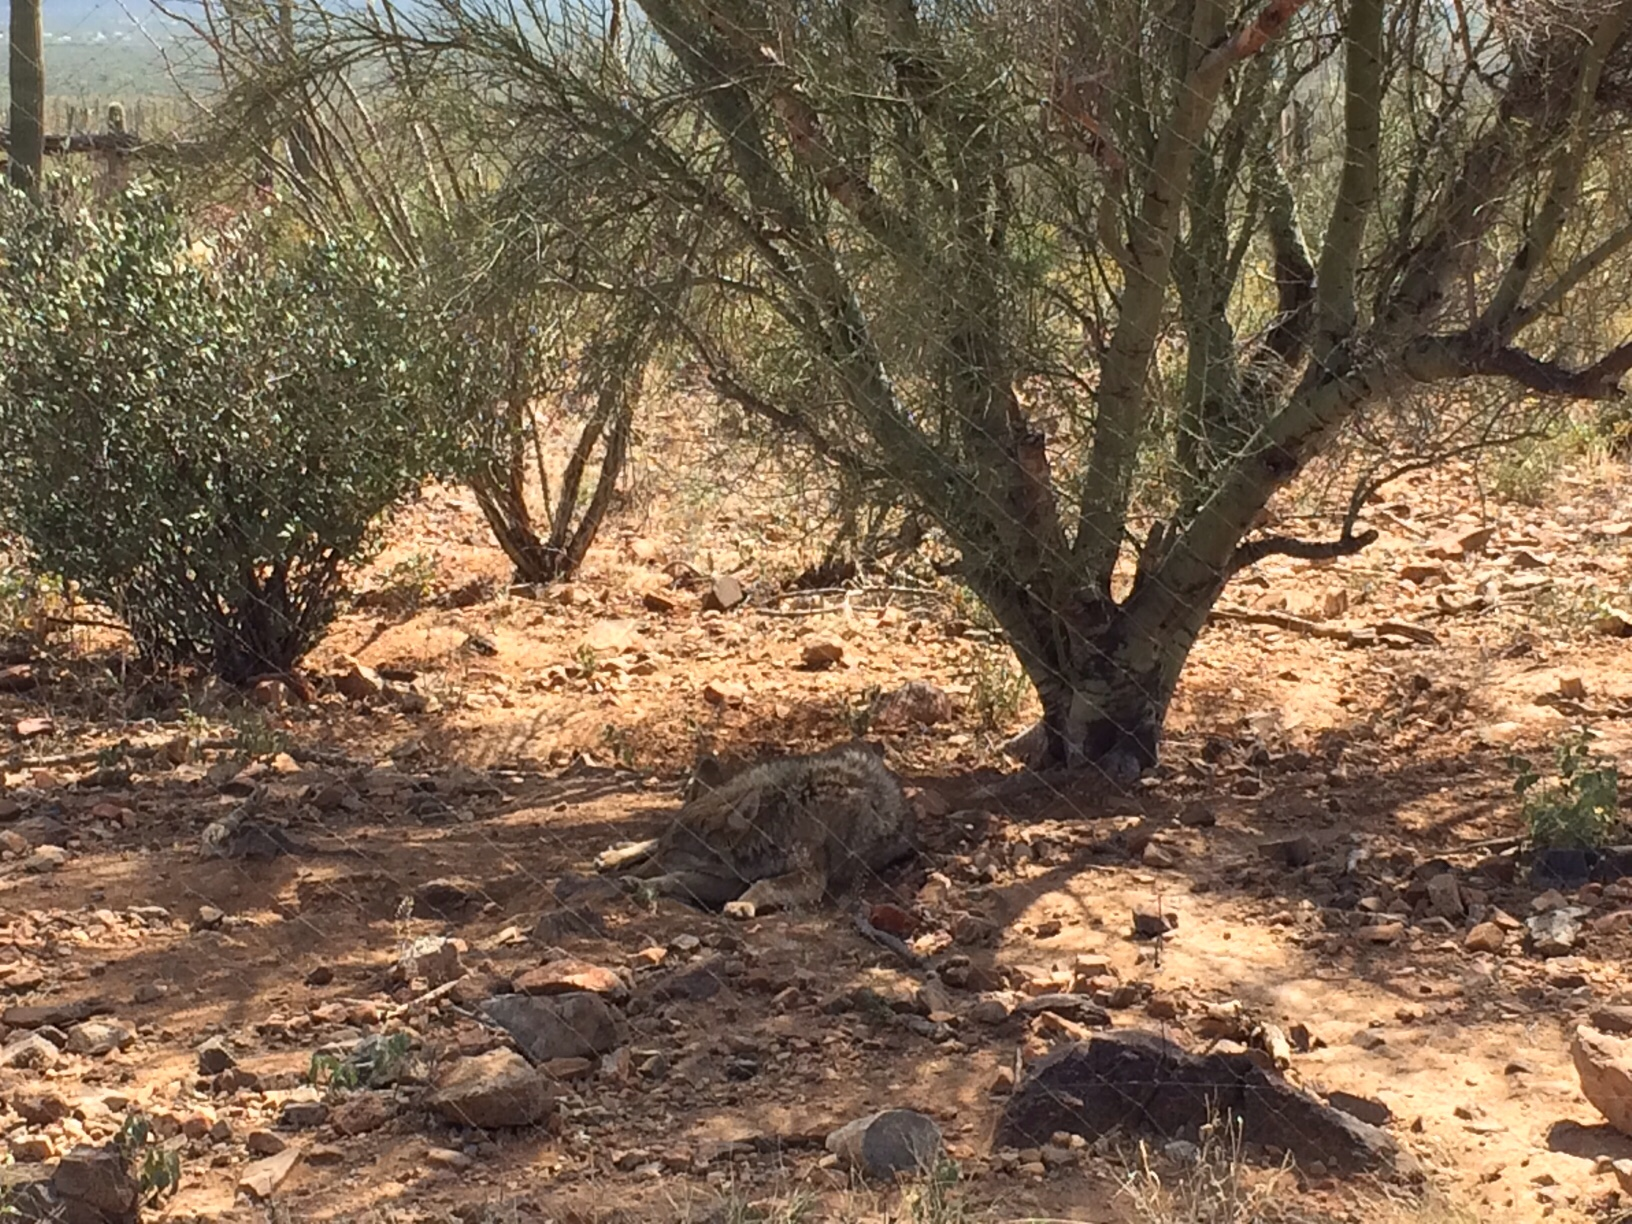 Javelina resting in shade